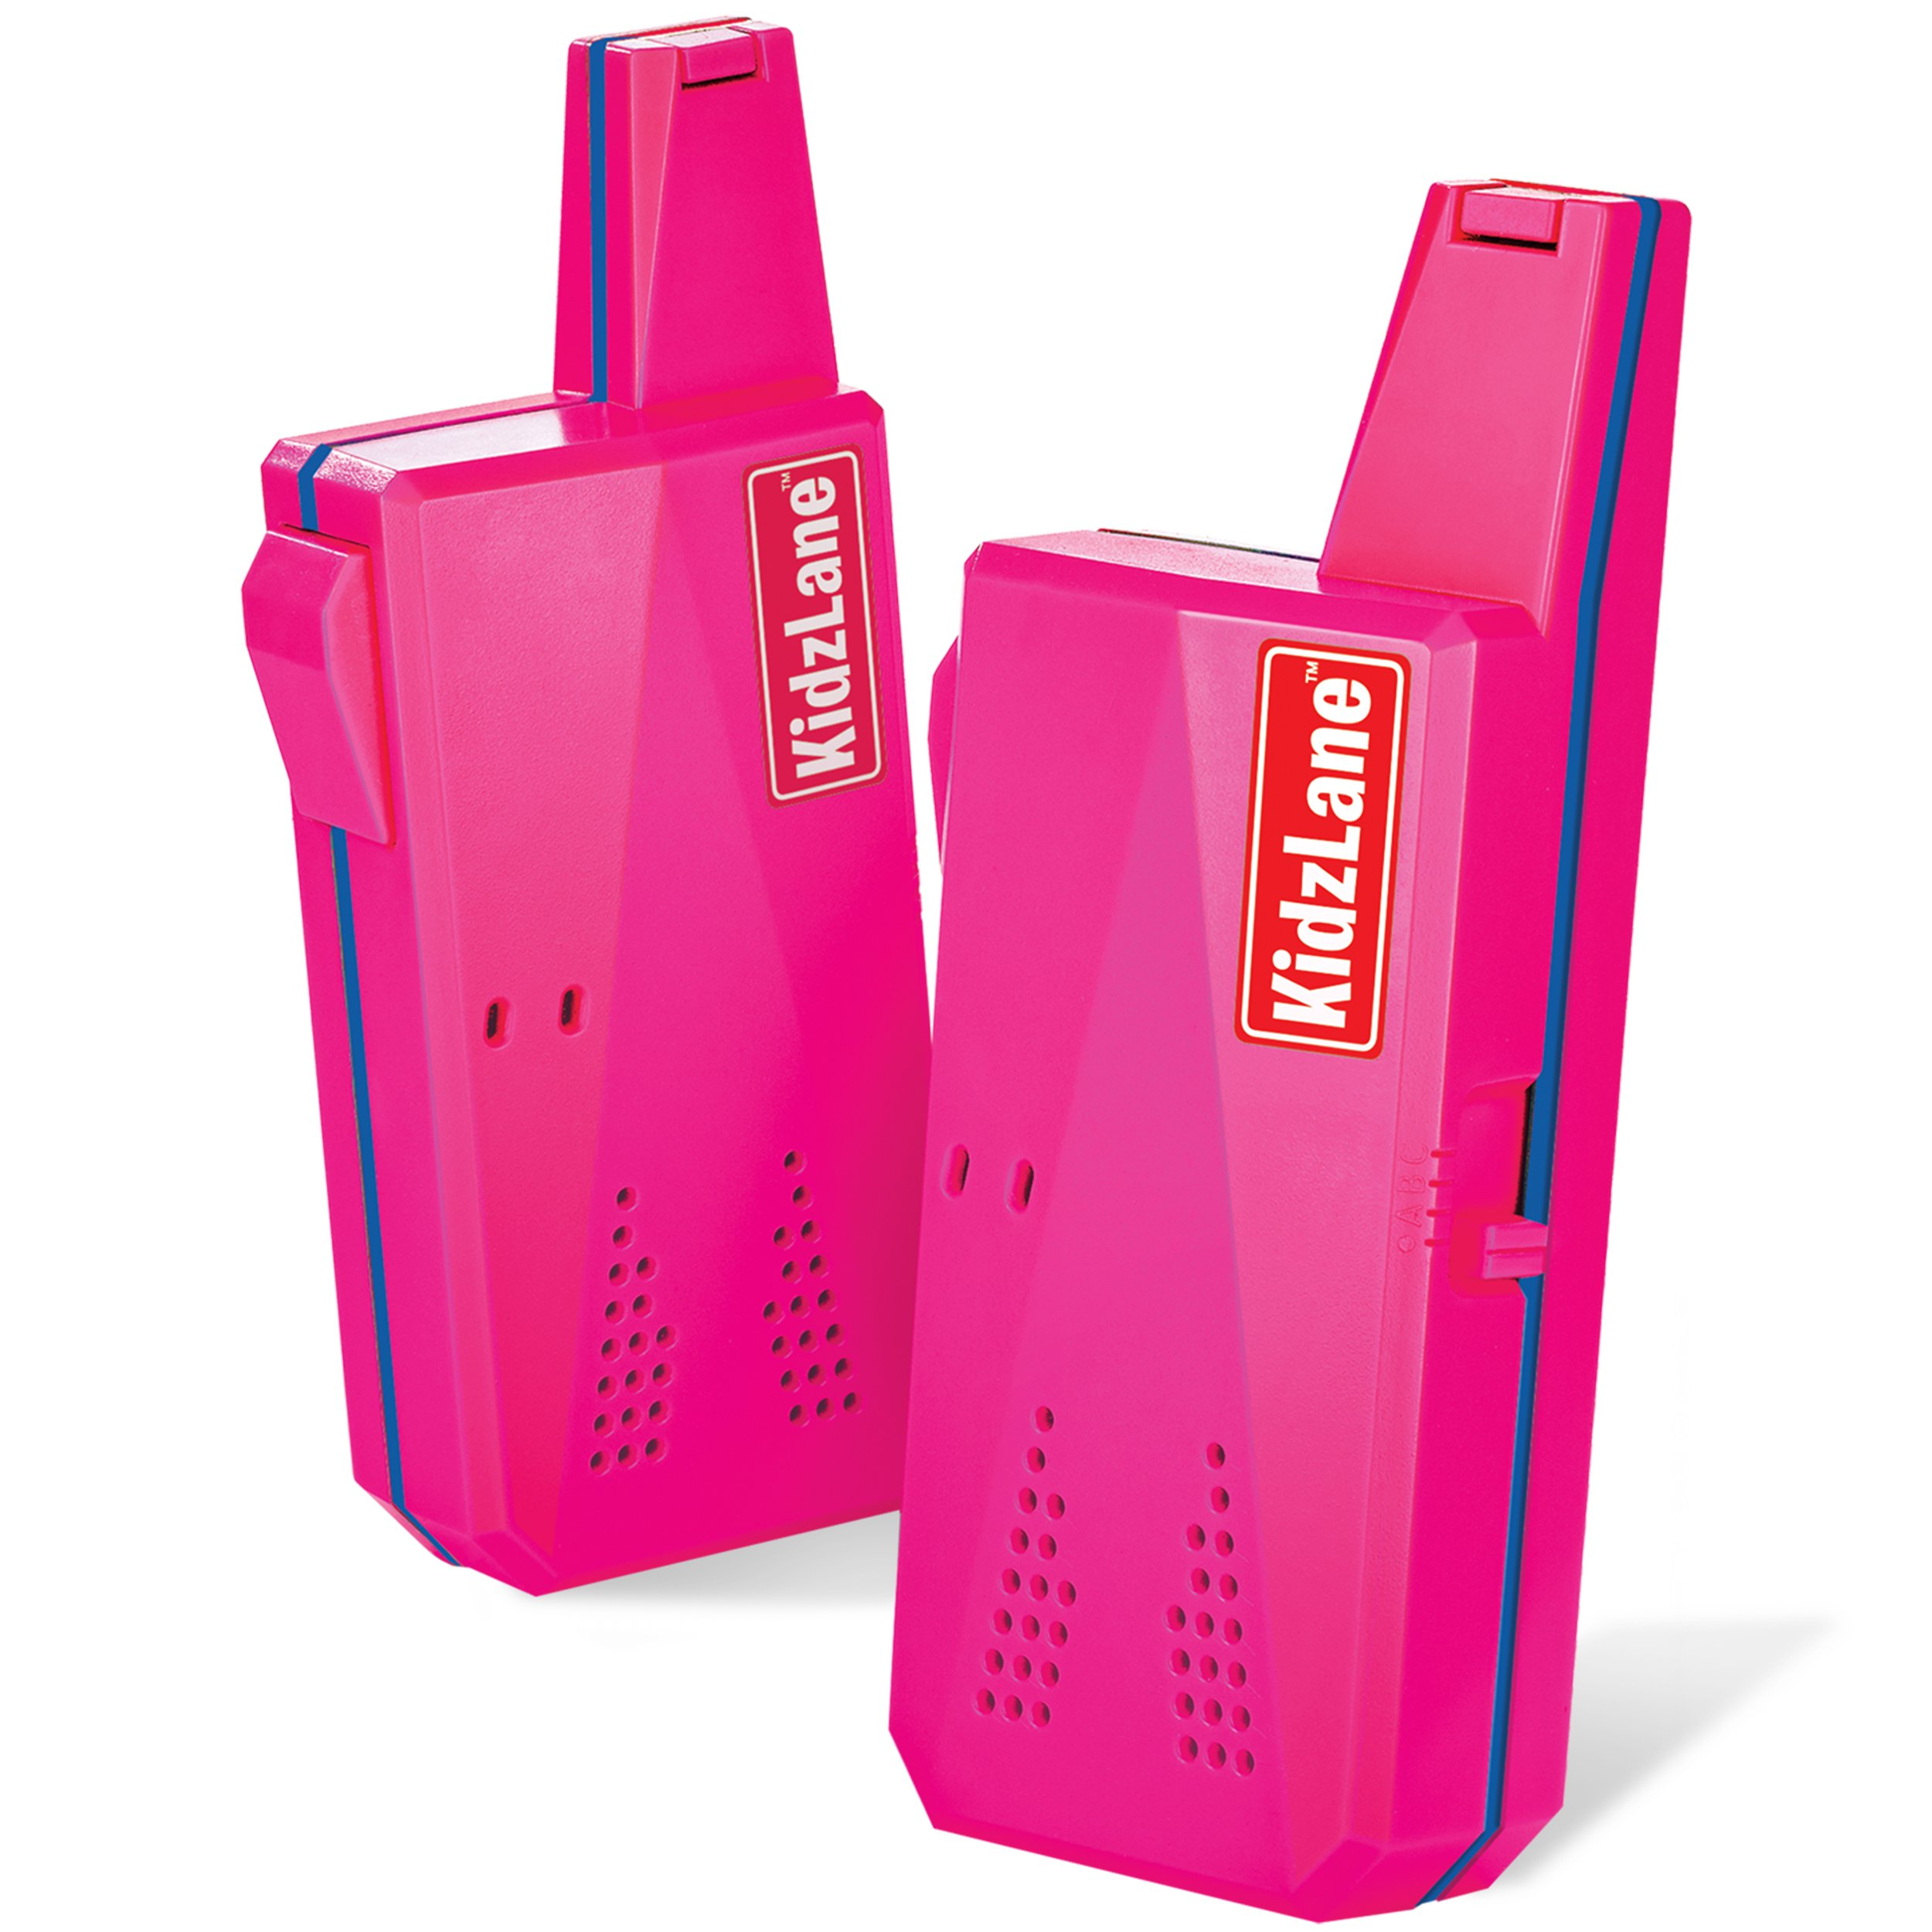 Kidzlane Durable Walkie Talkies for Girls, Easy To Use and Kids Friendly 2 Mile Range, 3 Channel